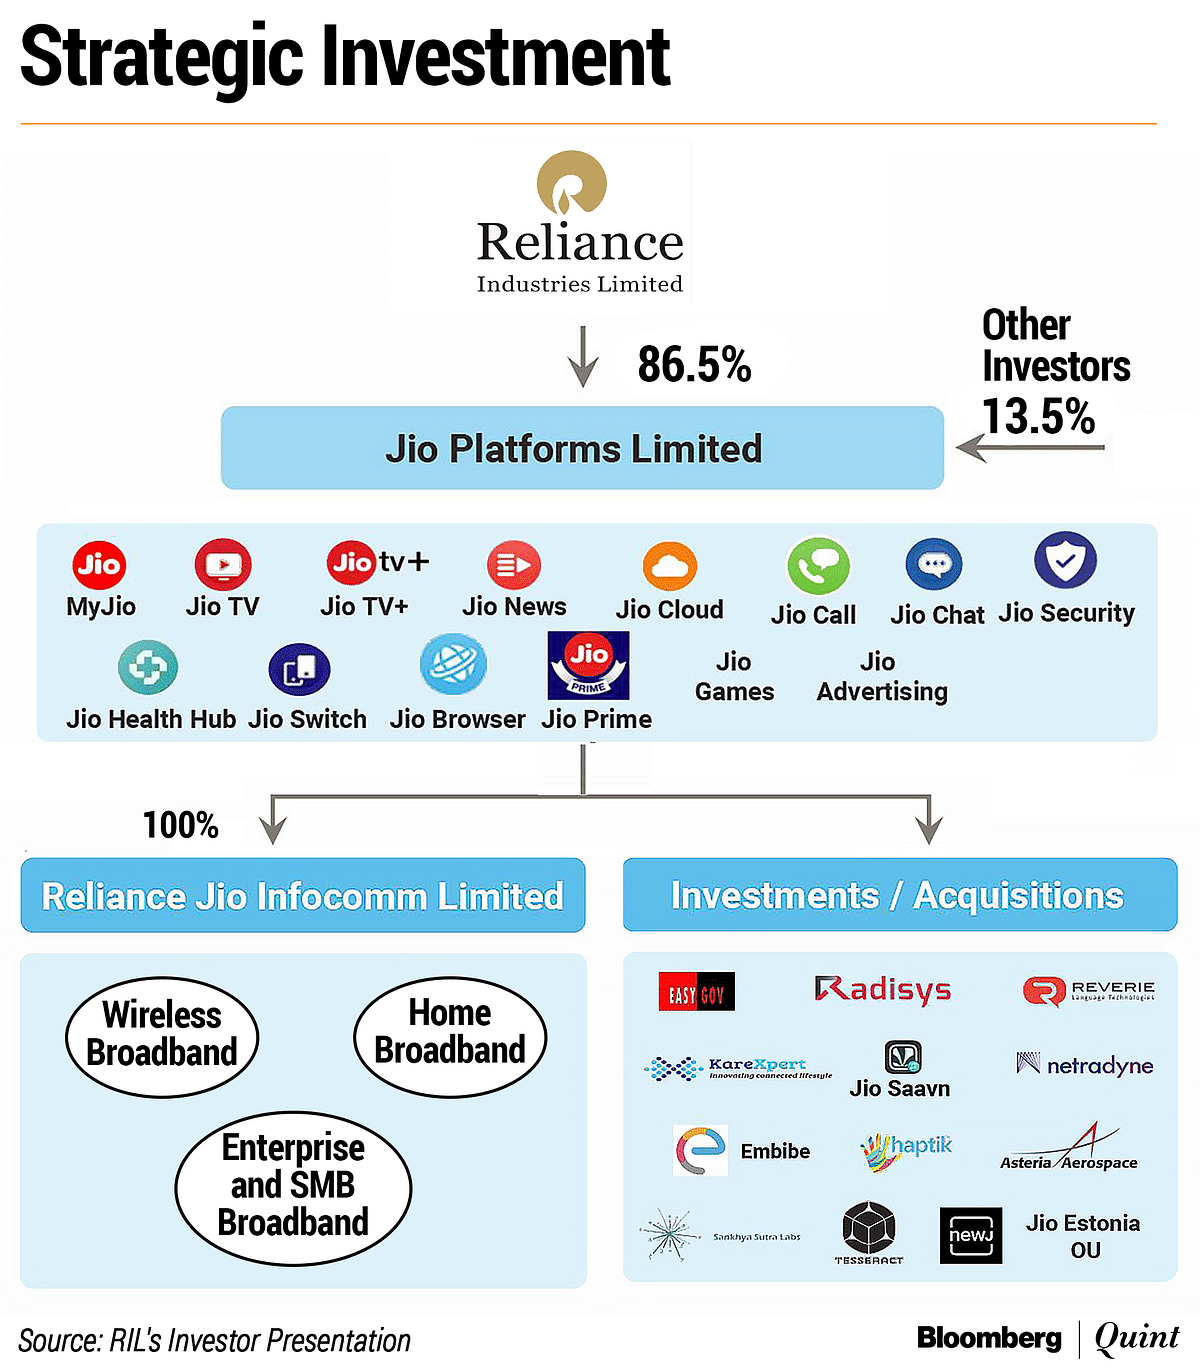 Where Jio Platforms Derives Its Value From